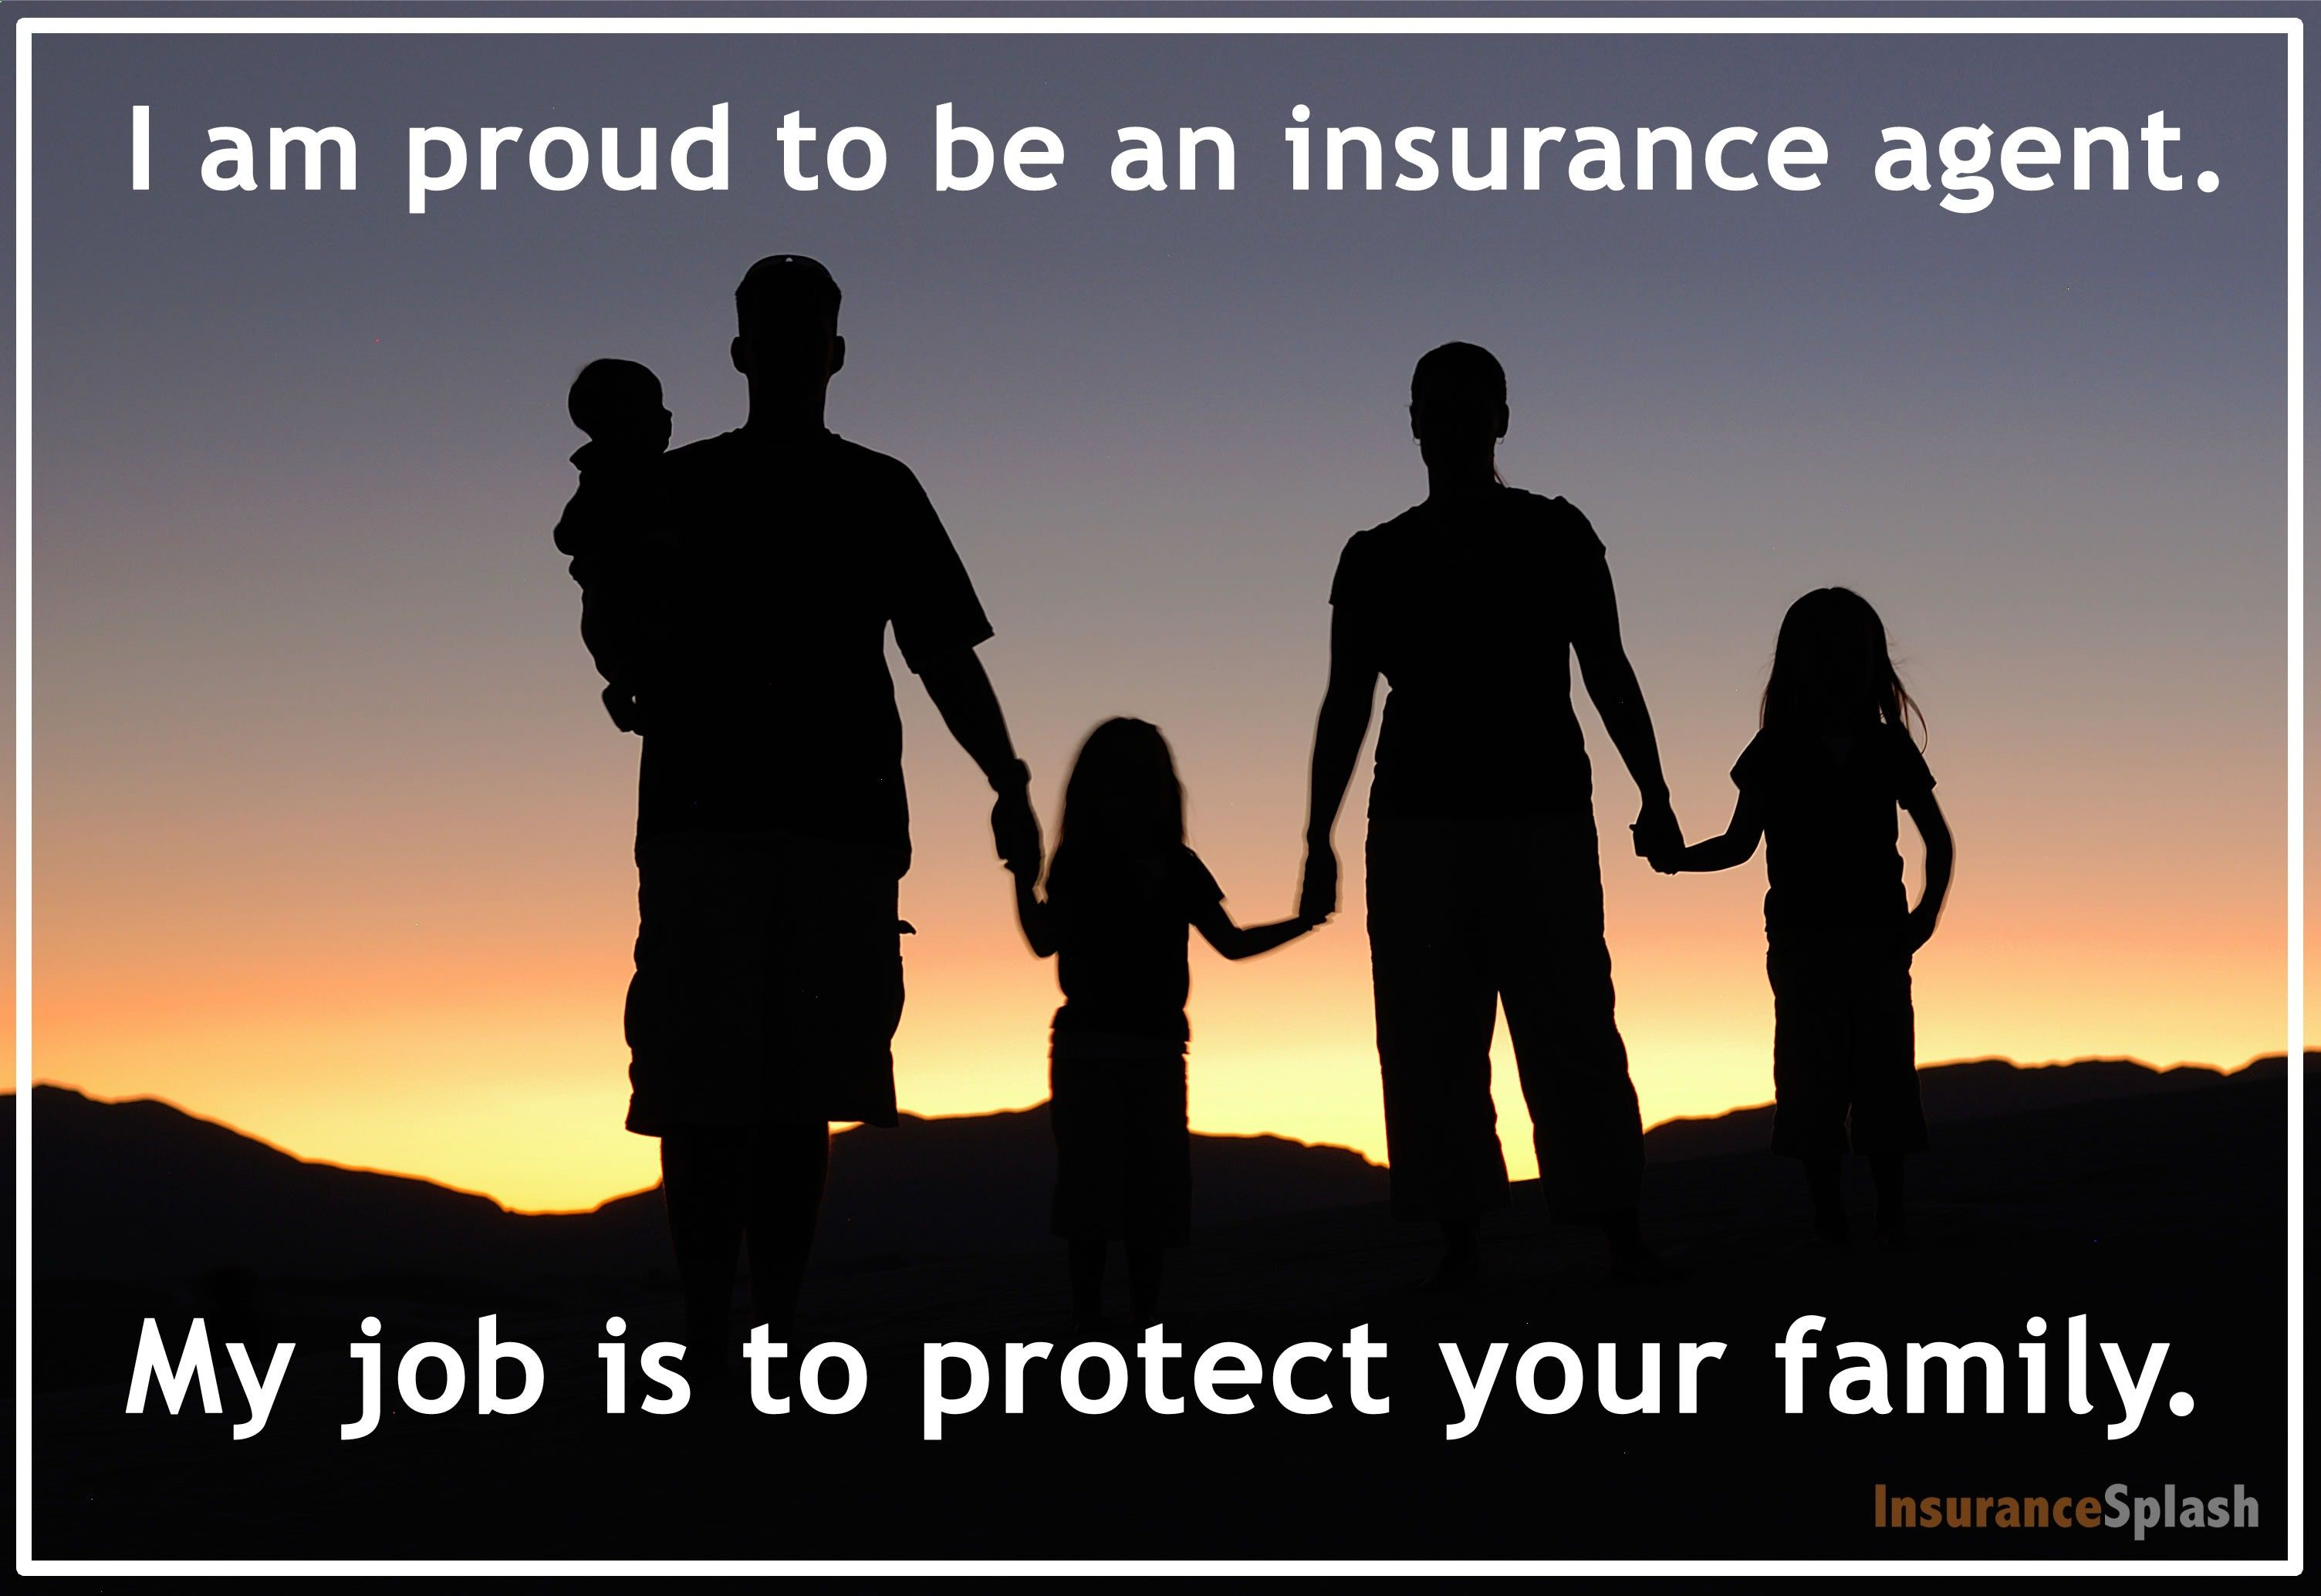 An Insurance Agents Job Is To Protect Your Family Thats Something To Be Proud Of Life Insurance Marketing Life Insurance Quotes Insurance Agent